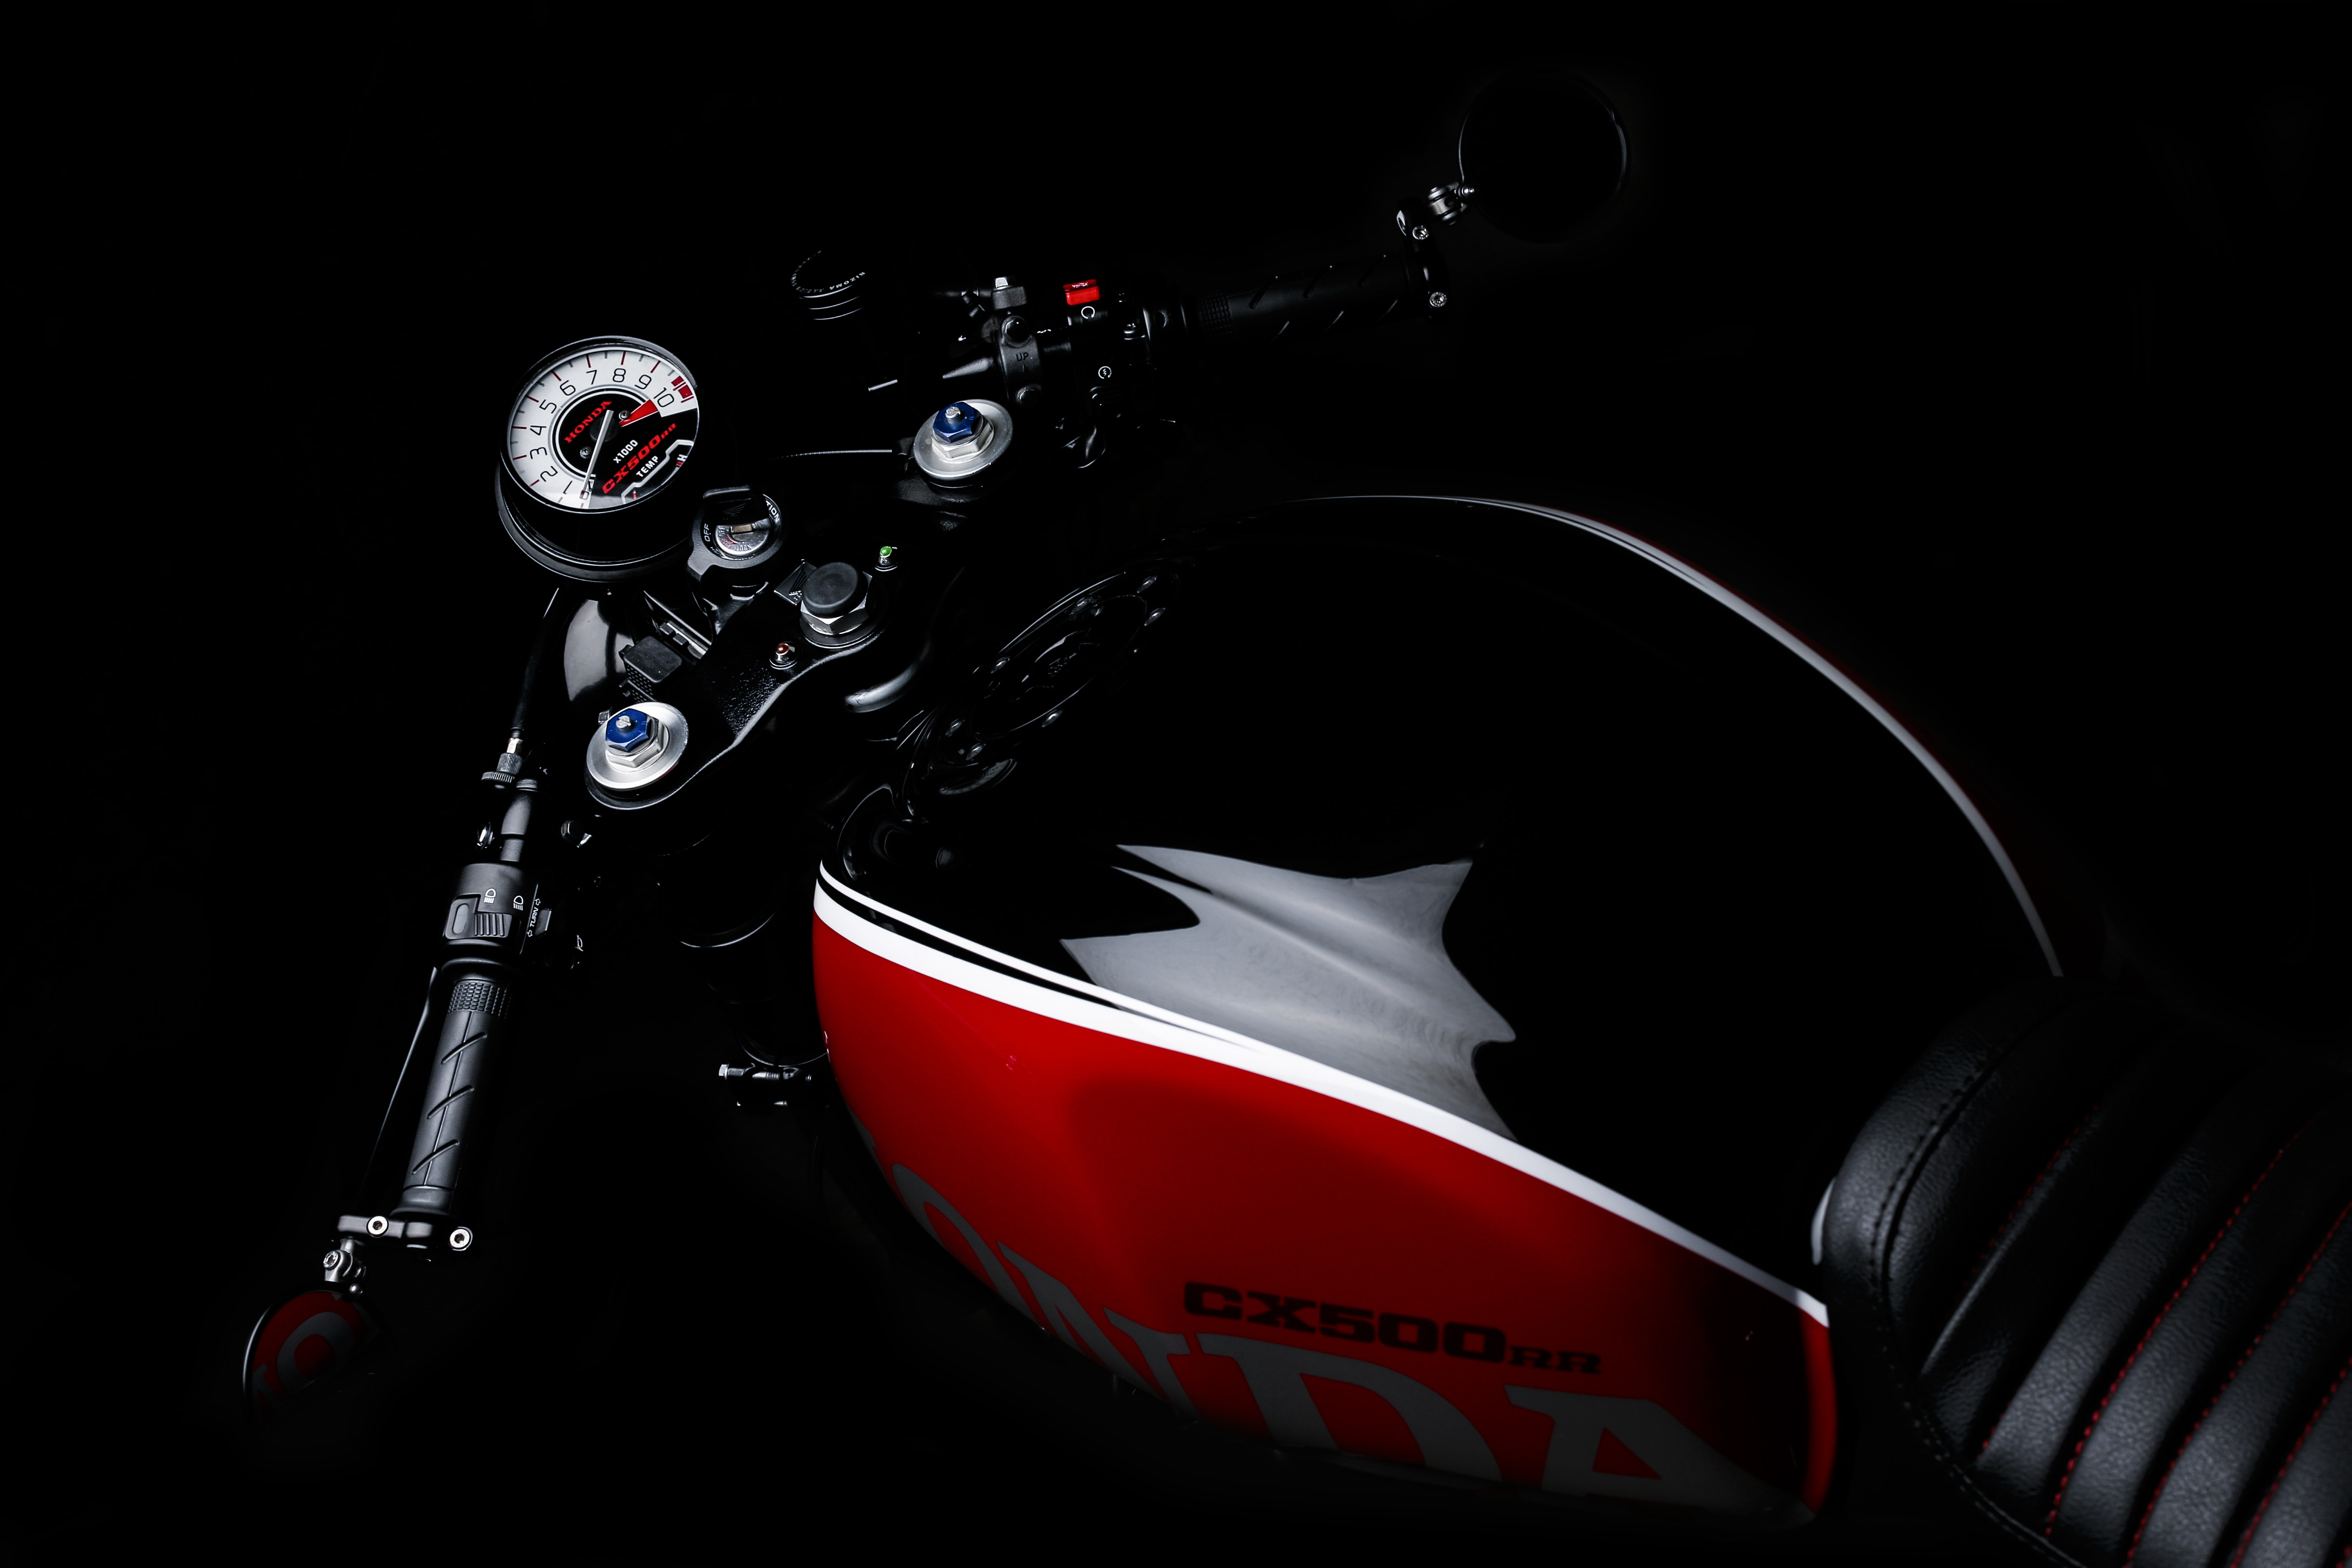 black and red Honda motorcycle